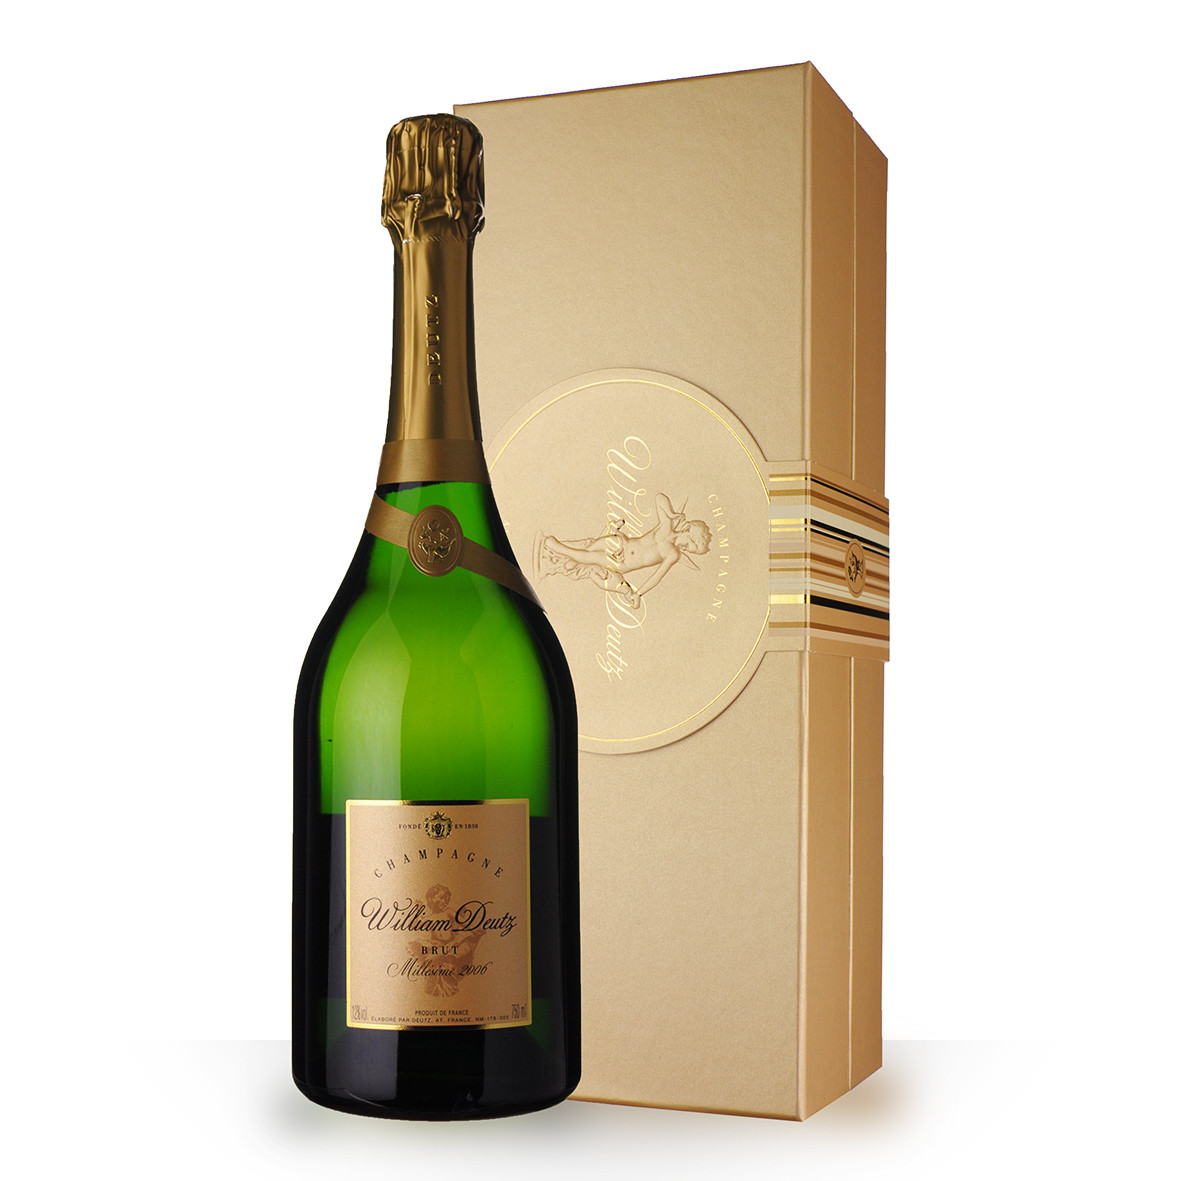 Champagne Deutz Cuvée William Deutz 2006 Brut 75cl Coffret www.odyssee-vins.com